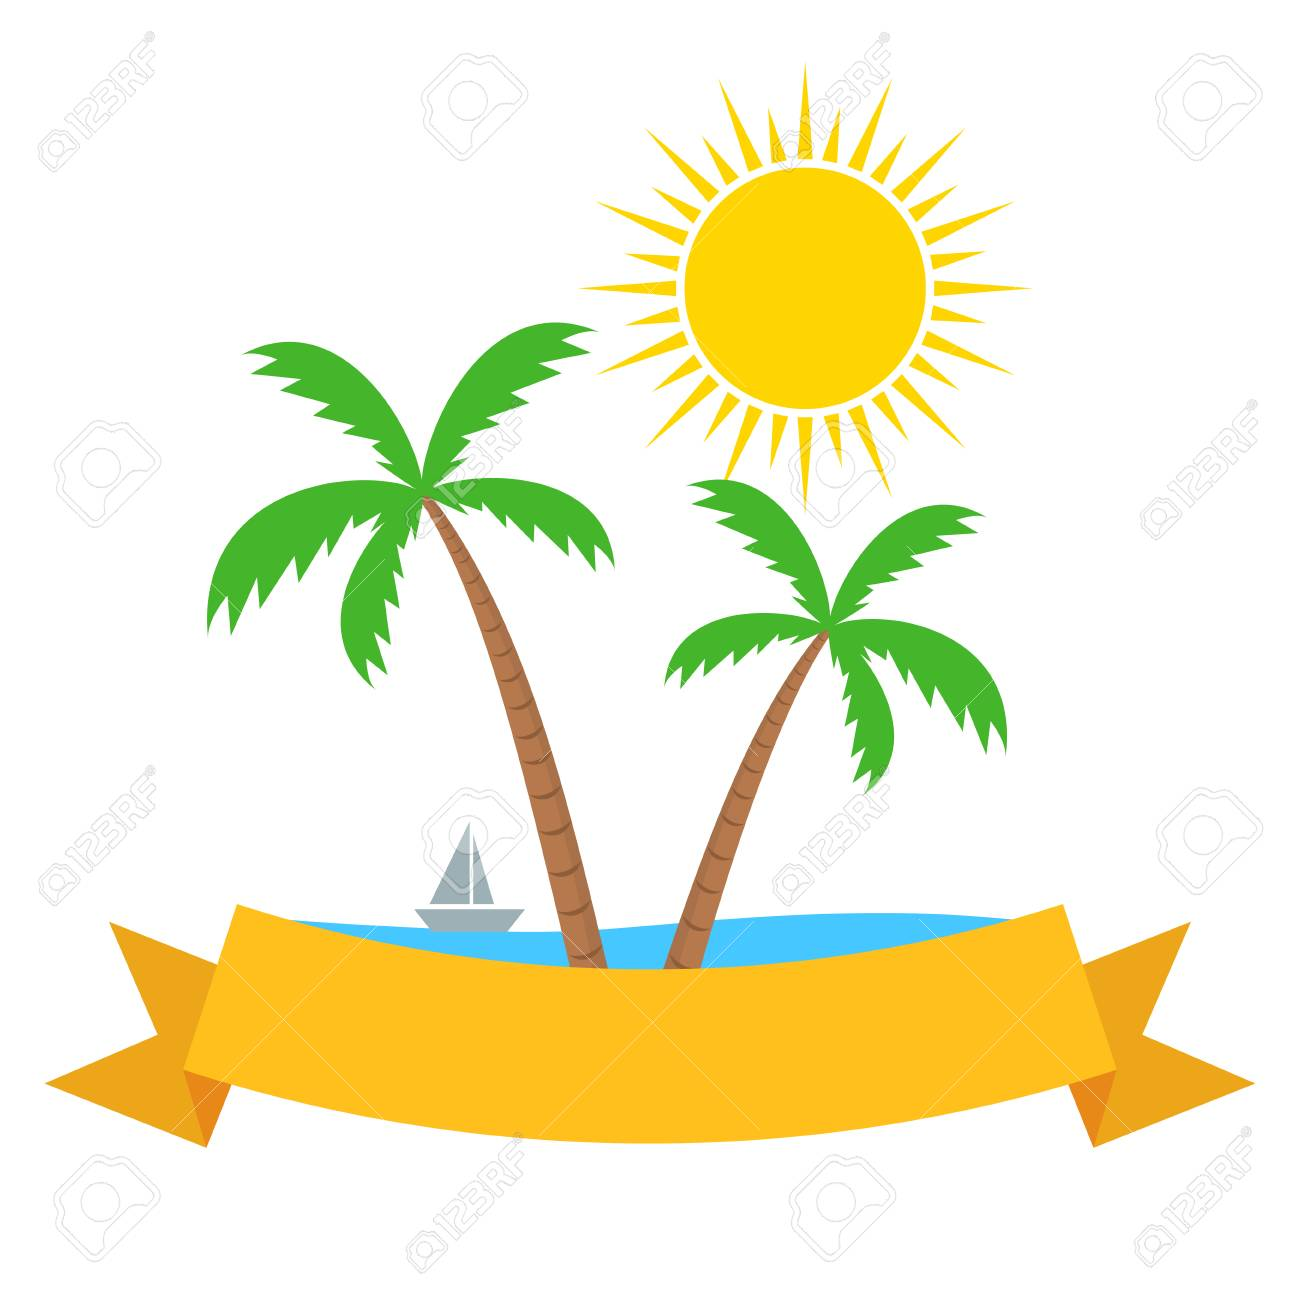 Tropical summer beach themed banner template with palms trees.